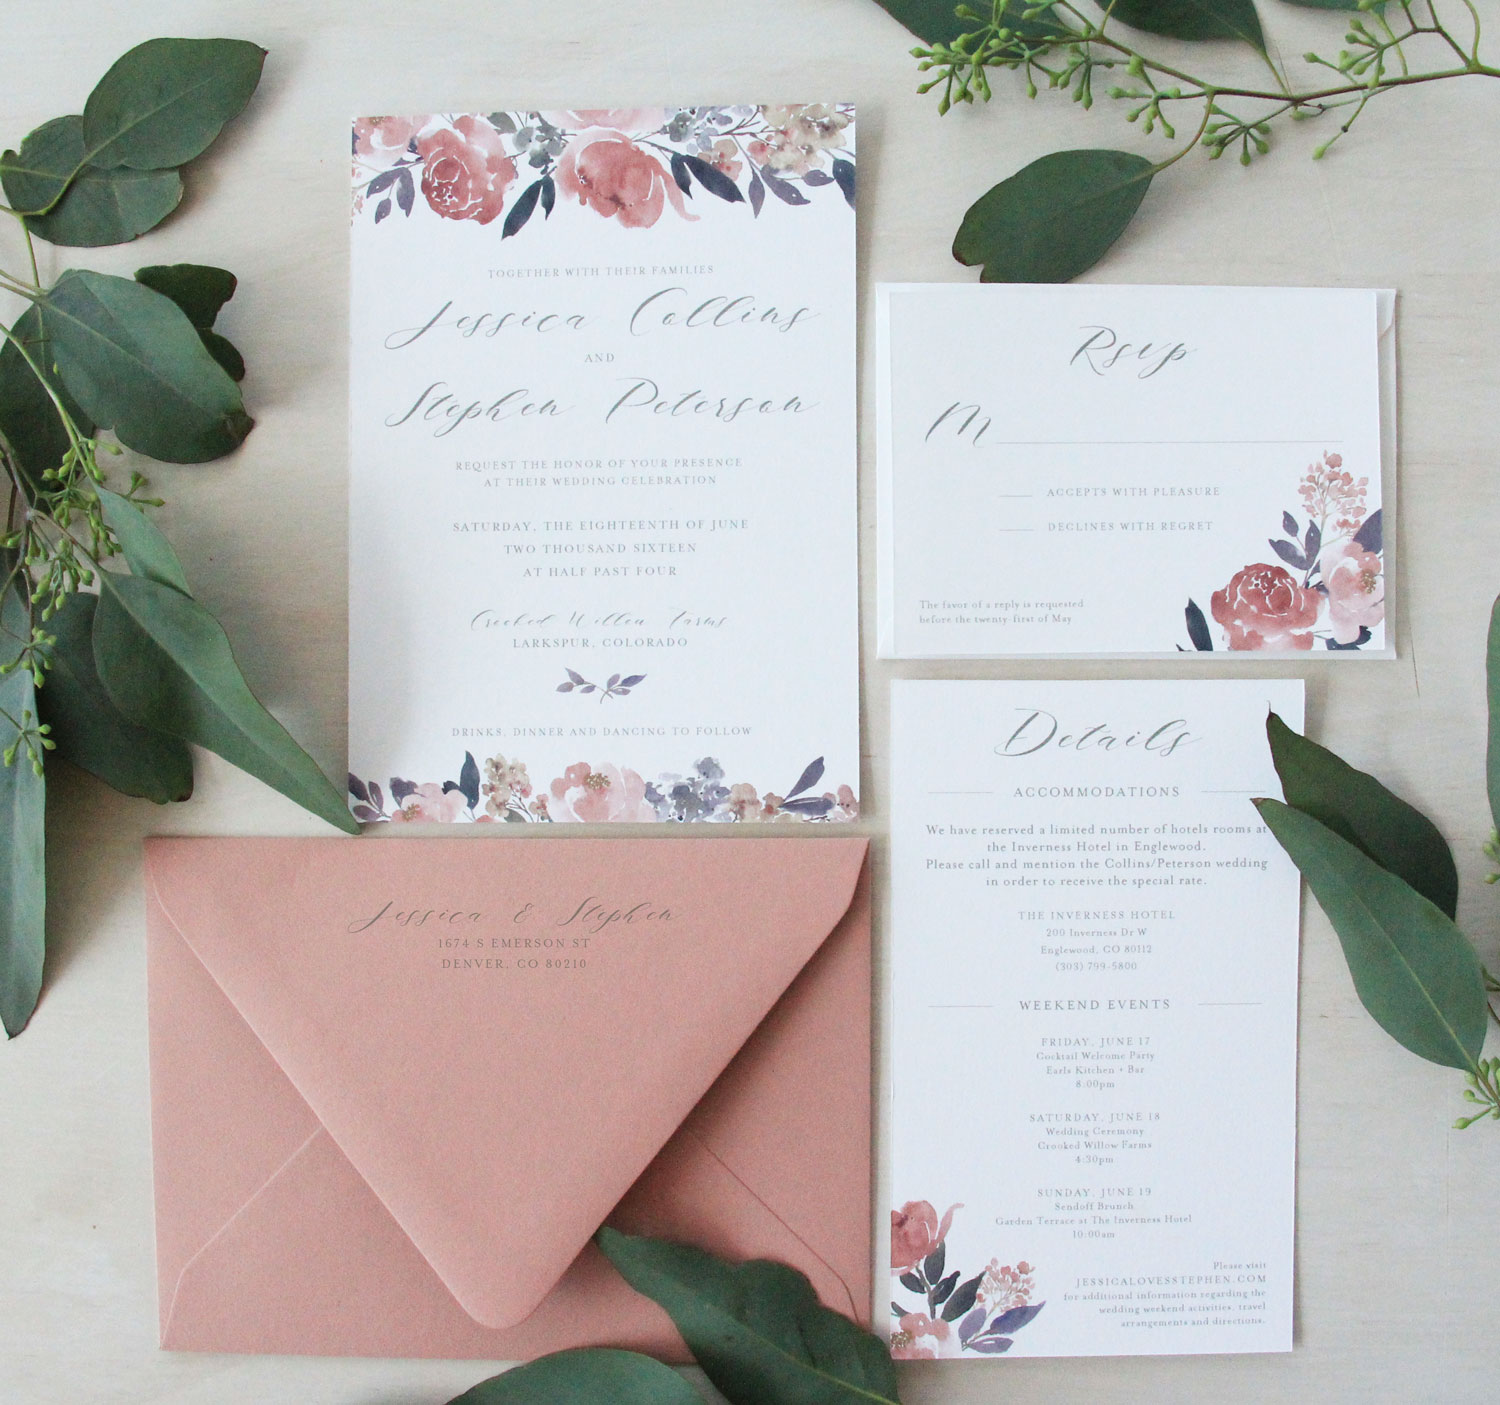 Jessica-and-Stephen-Zoet-Design-Dusty-Rose-Watercolor-Invitation.jpg